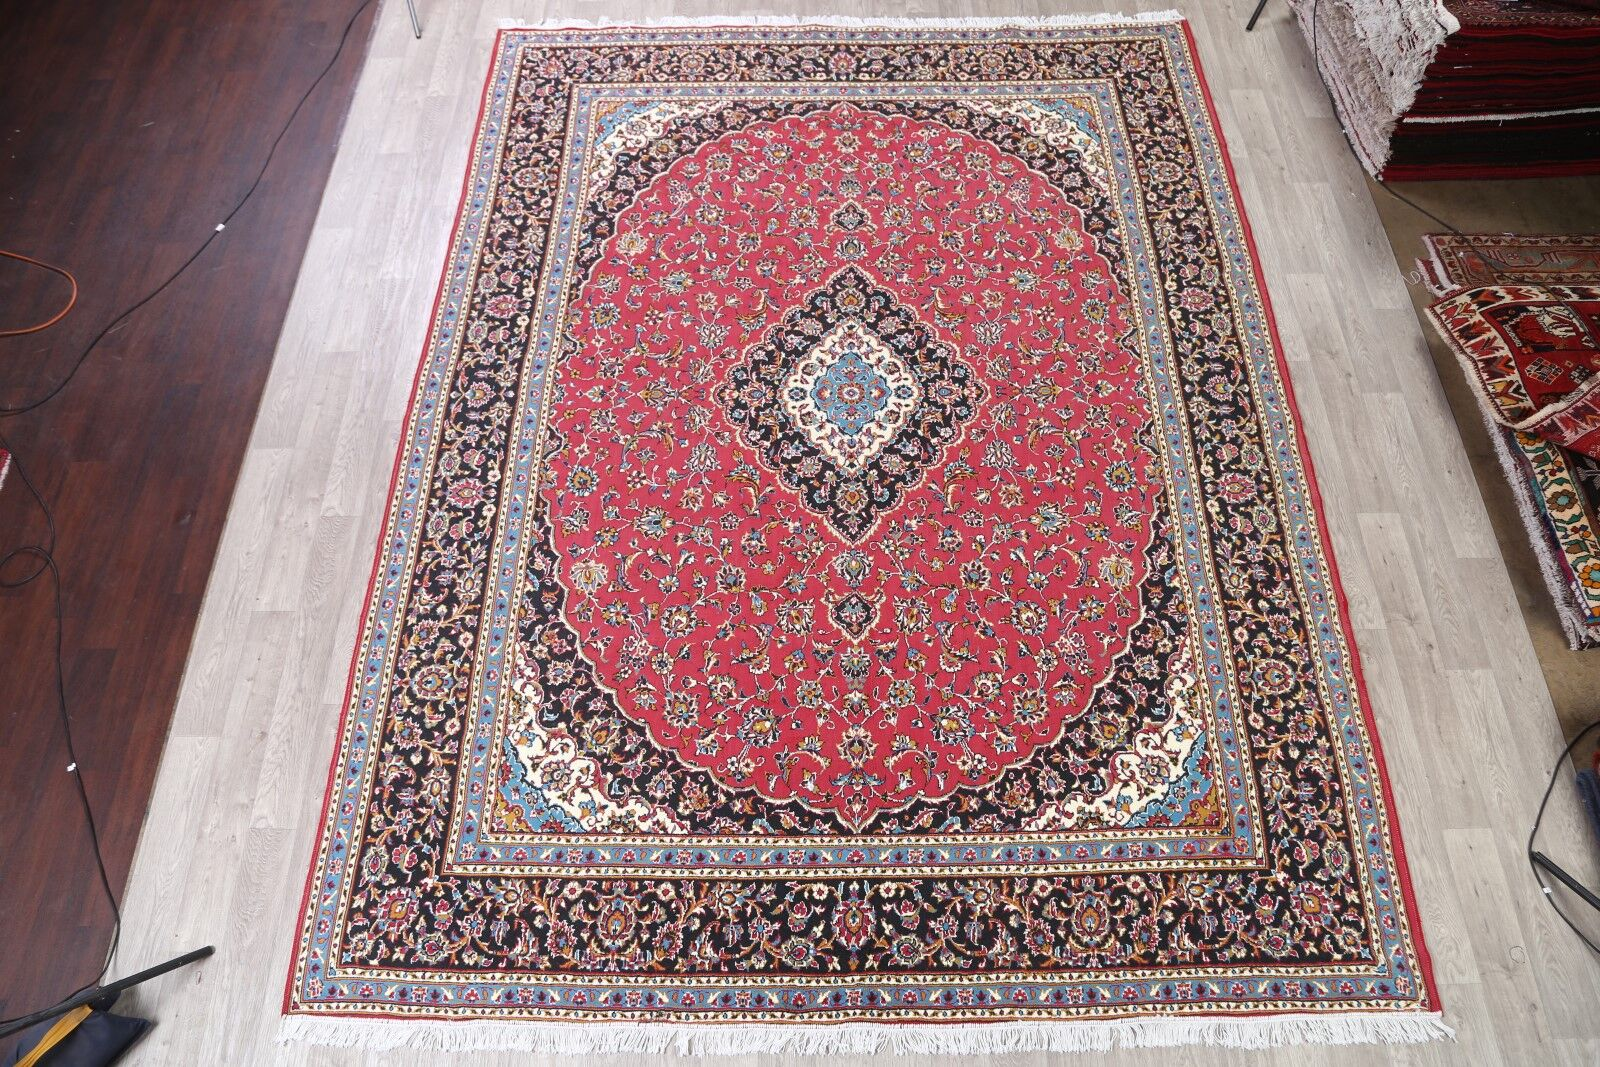 Classical Soft Plush Kashan Persian Red/Ivory/Black Area Rug